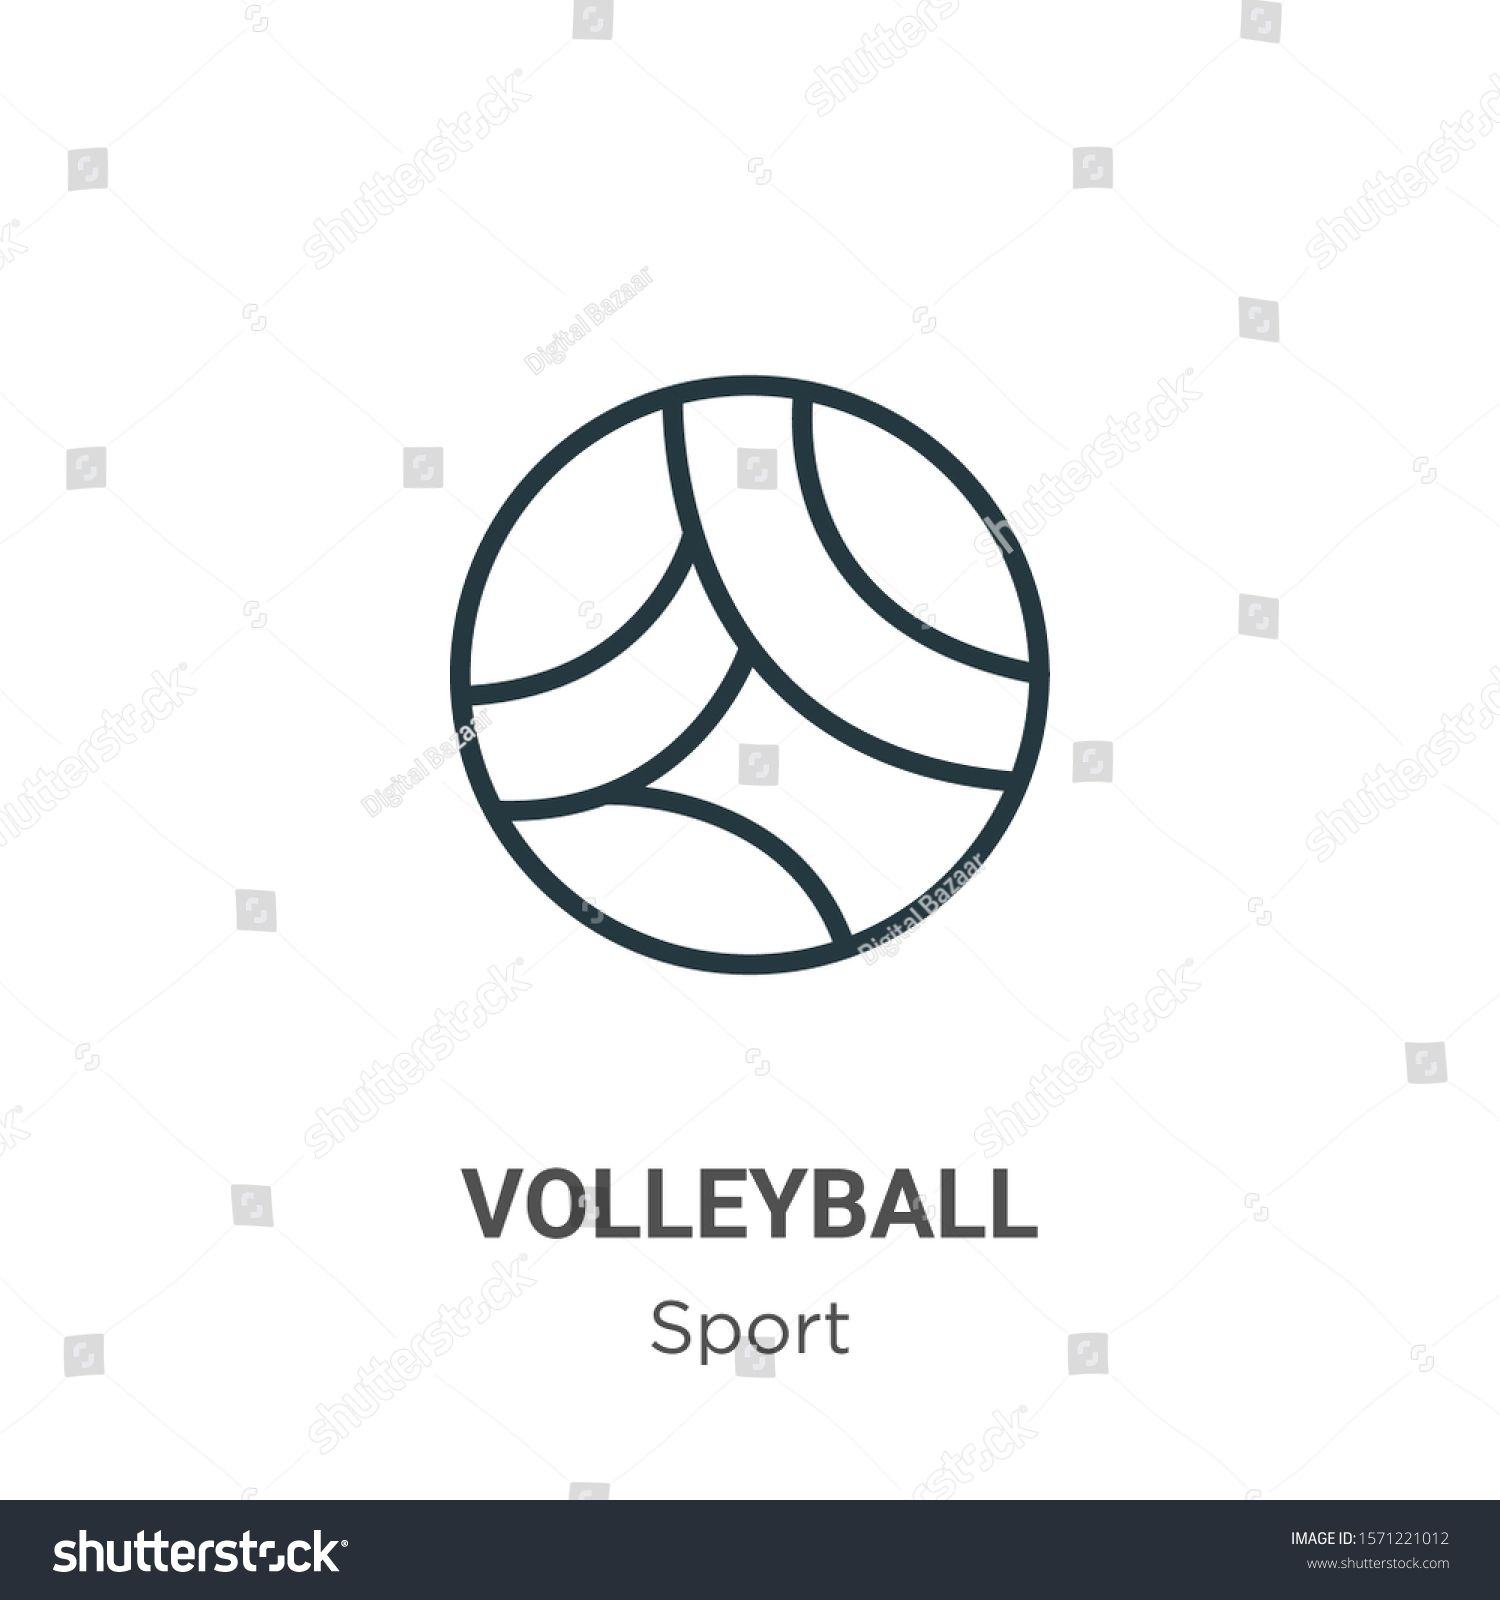 Volleyball Outline Vector Icon Thin Line Royalty Free Image Vector In 2020 Vector Icons Thin Line Vector